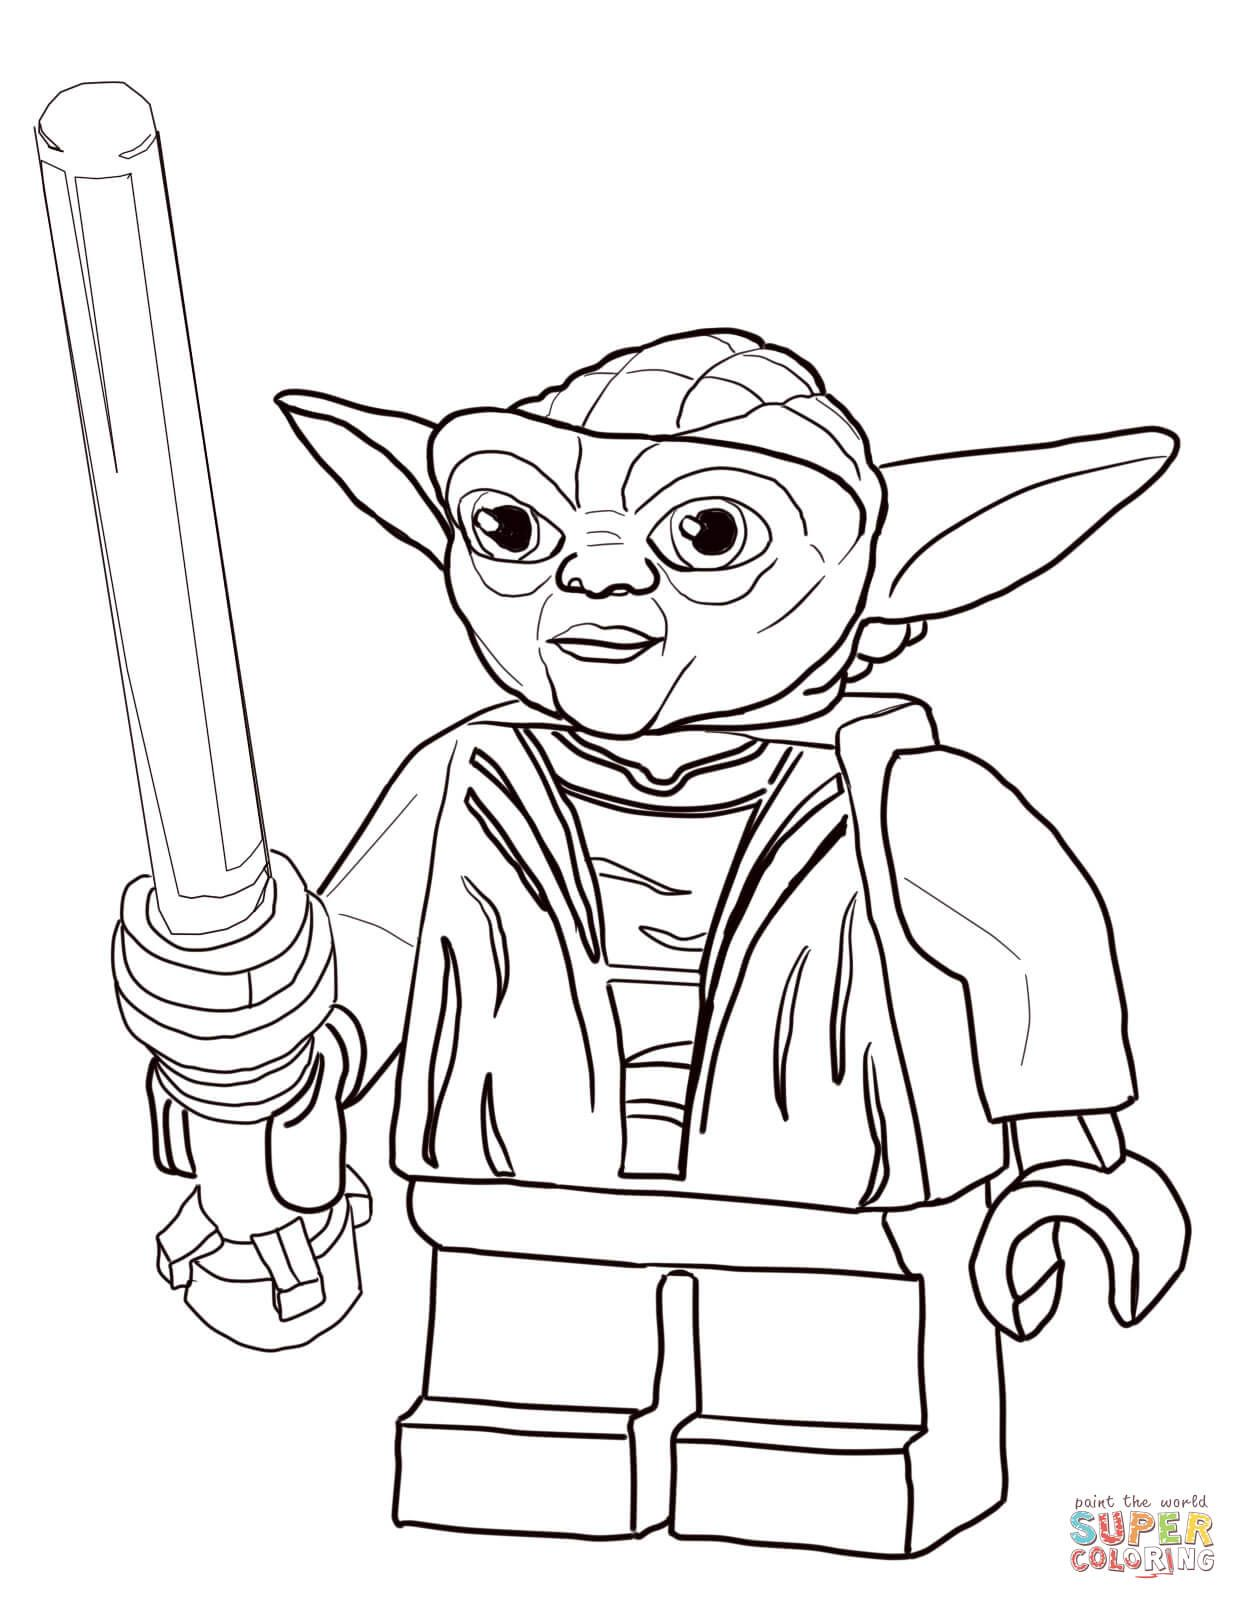 Lego coloring pages to print lego coloring pages lego darth - Lego Star Wars Master Yoda Coloring Page From Lego Star Wars Category Select From 22482 Printable Crafts Of Cartoons Nature Animals Bible And Many More